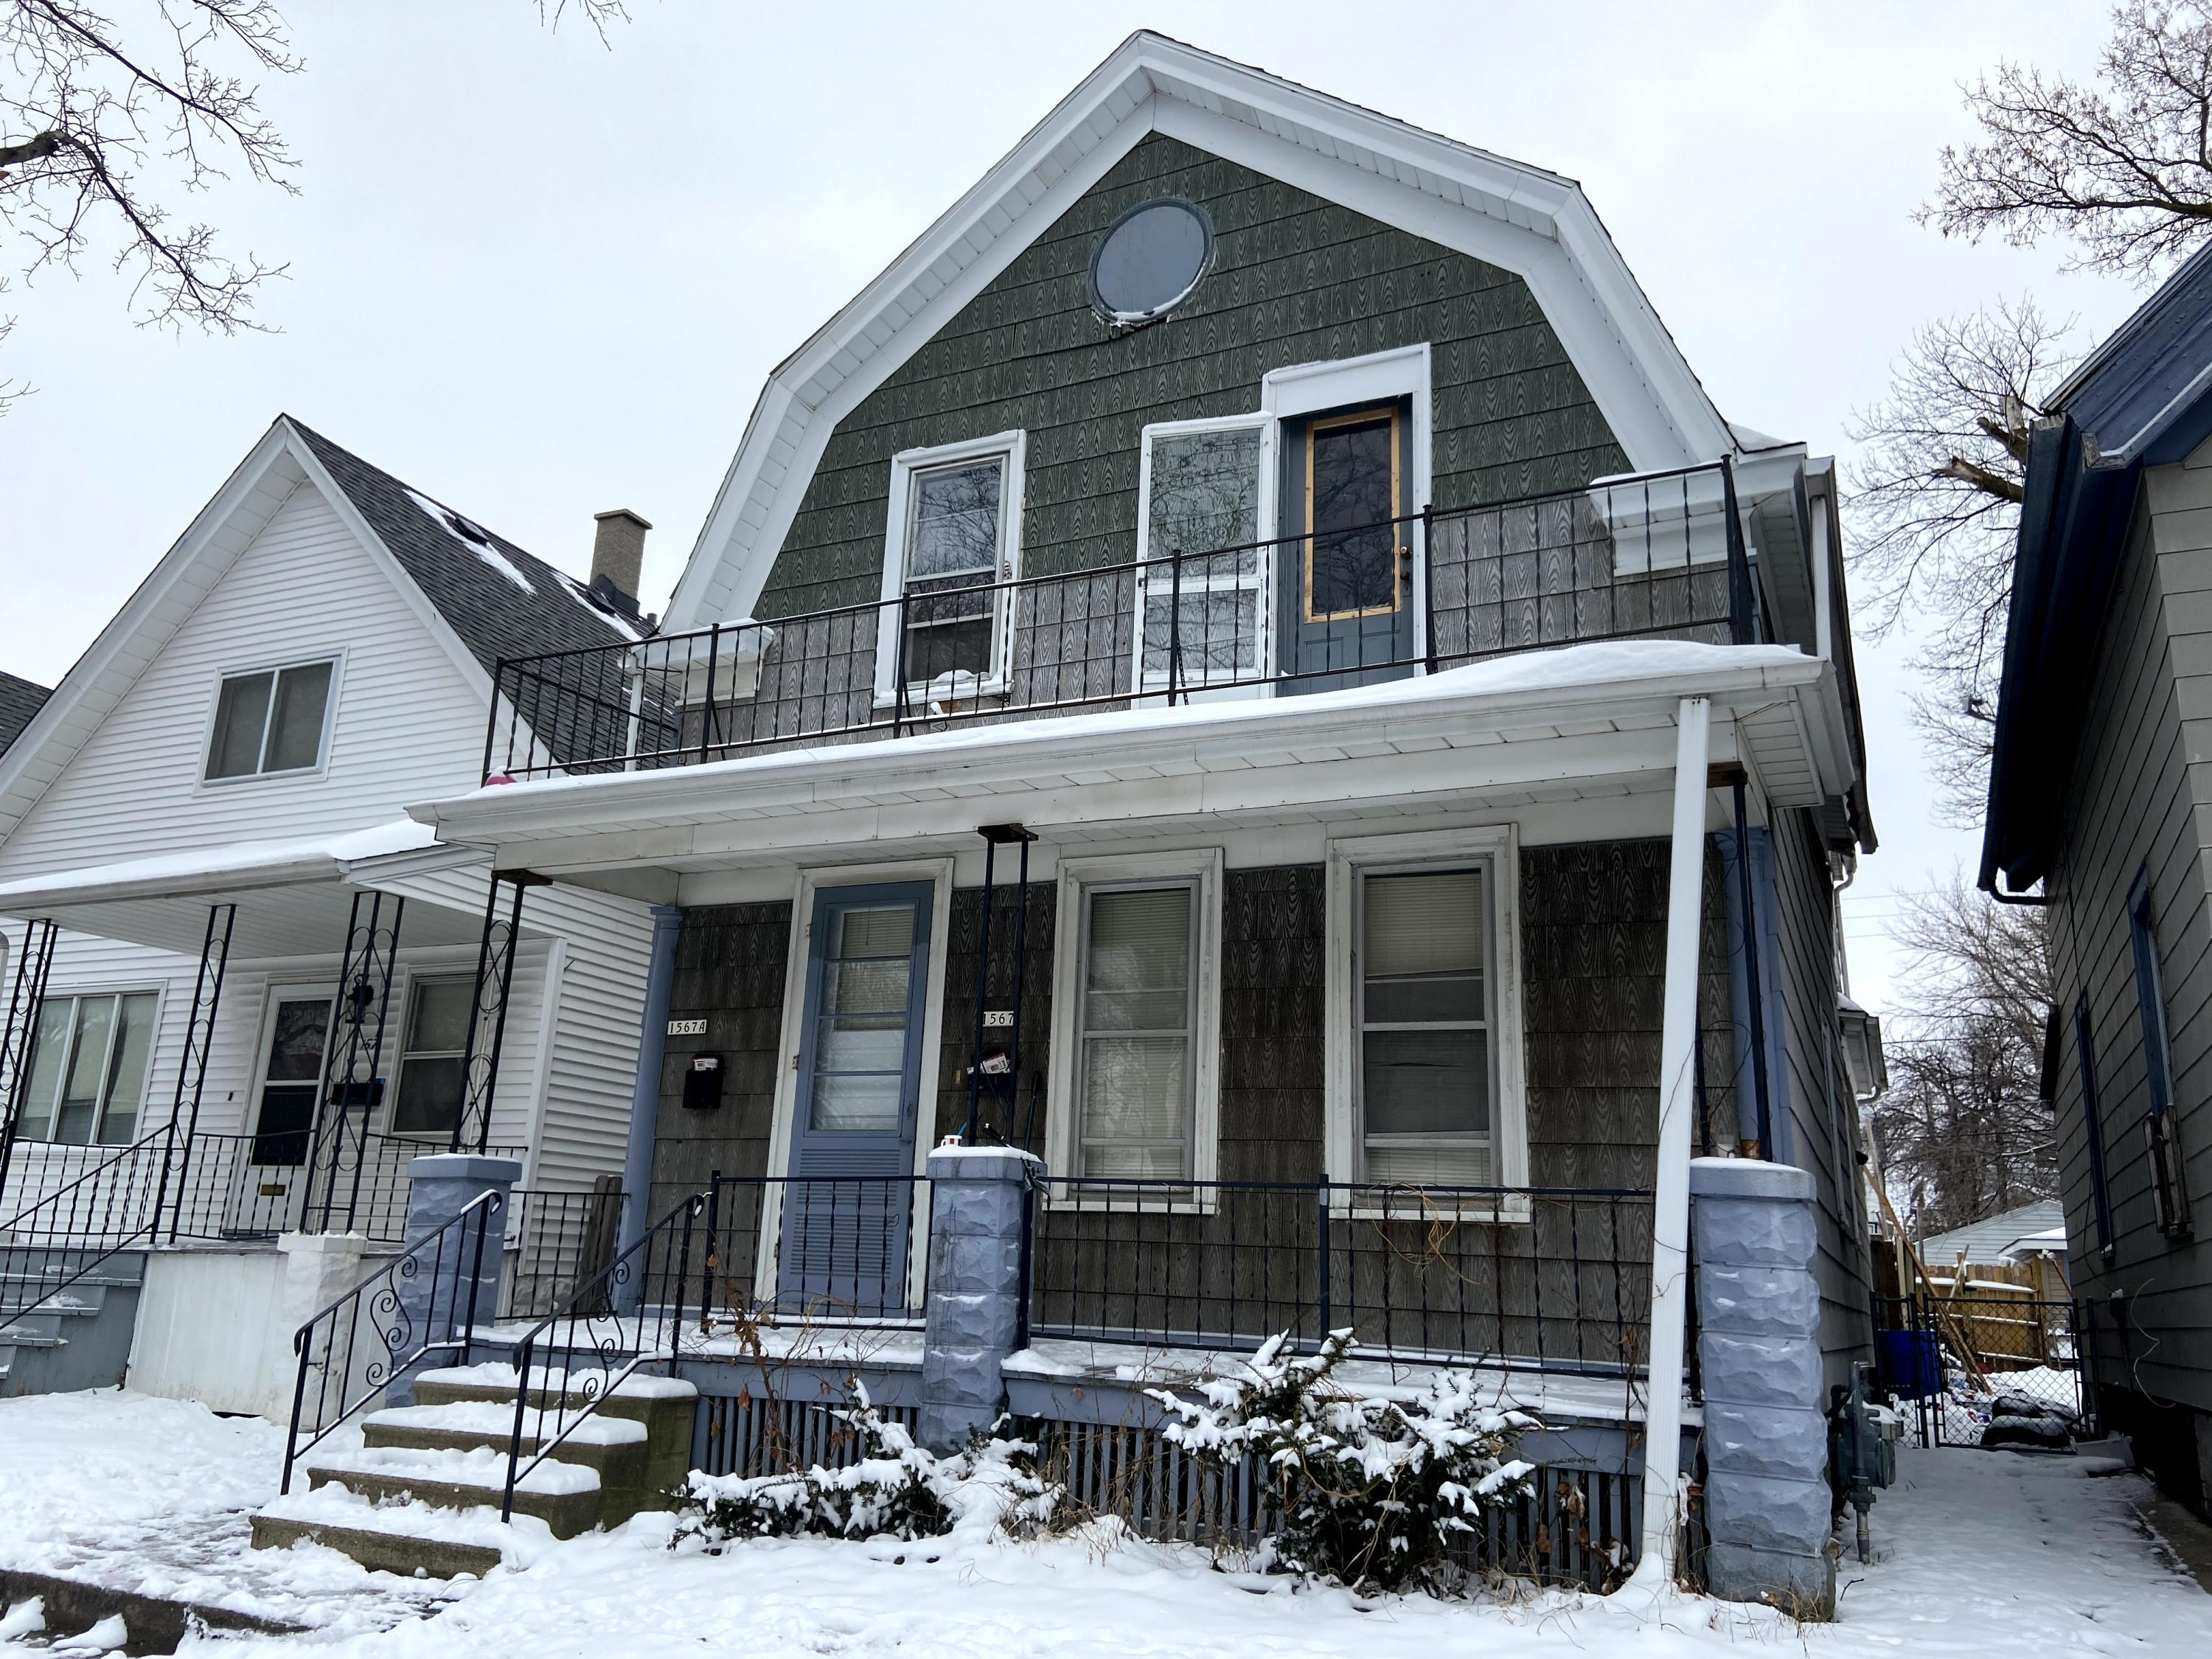 1567 29th St, Milwaukee, Wisconsin 53215, 2 Bedrooms Bedrooms, 5 Rooms Rooms,1 BathroomBathrooms,Two-Family,For Sale,29th St,1,1691310